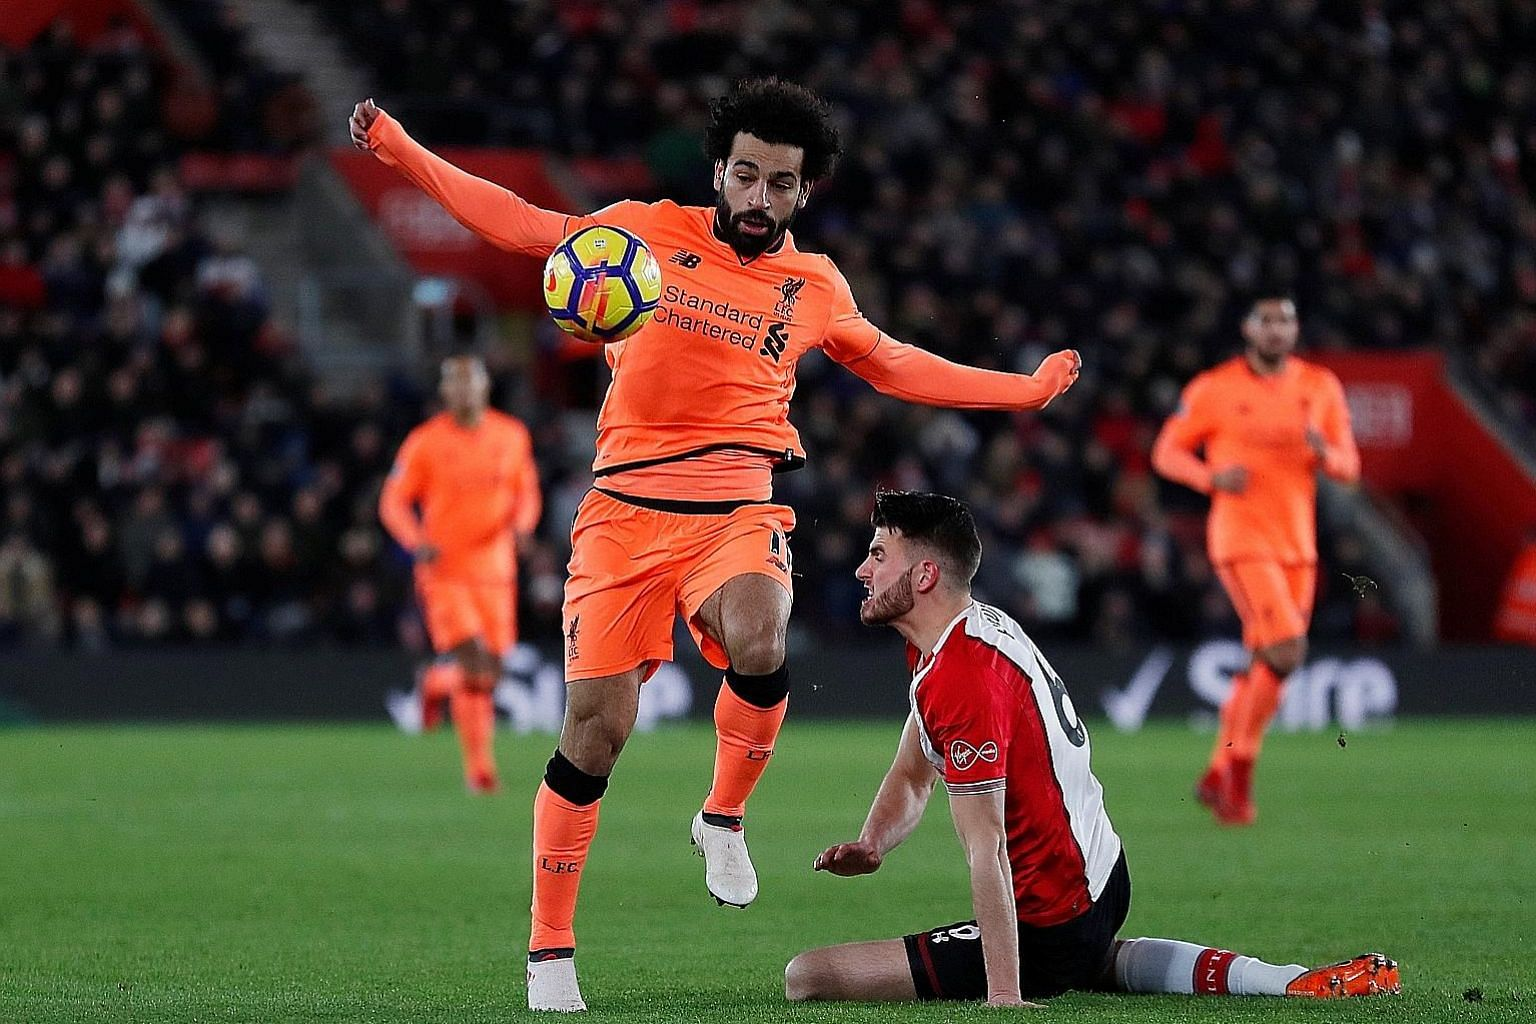 Liverpool's Mohamed Salah getting the better of Southampton defender Wesley Hoedt on Sunday. Salah pounced on an error by Hoedt to set up the opening goal before scoring his 22nd Premier League goal of the season.